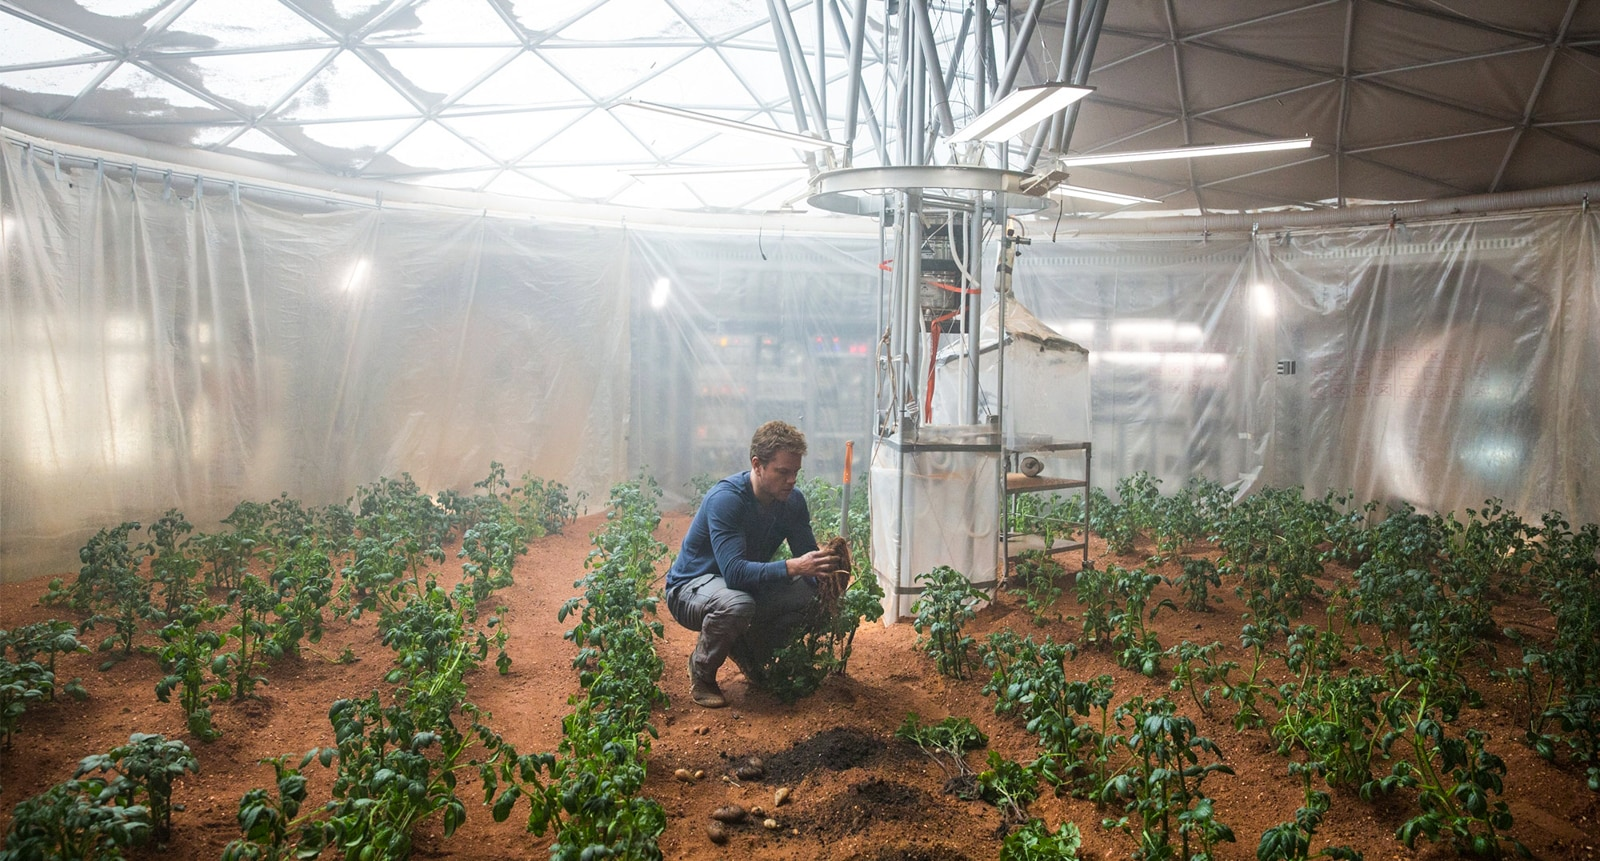 Matt Damon tending indoor garden (20th Century Fox)